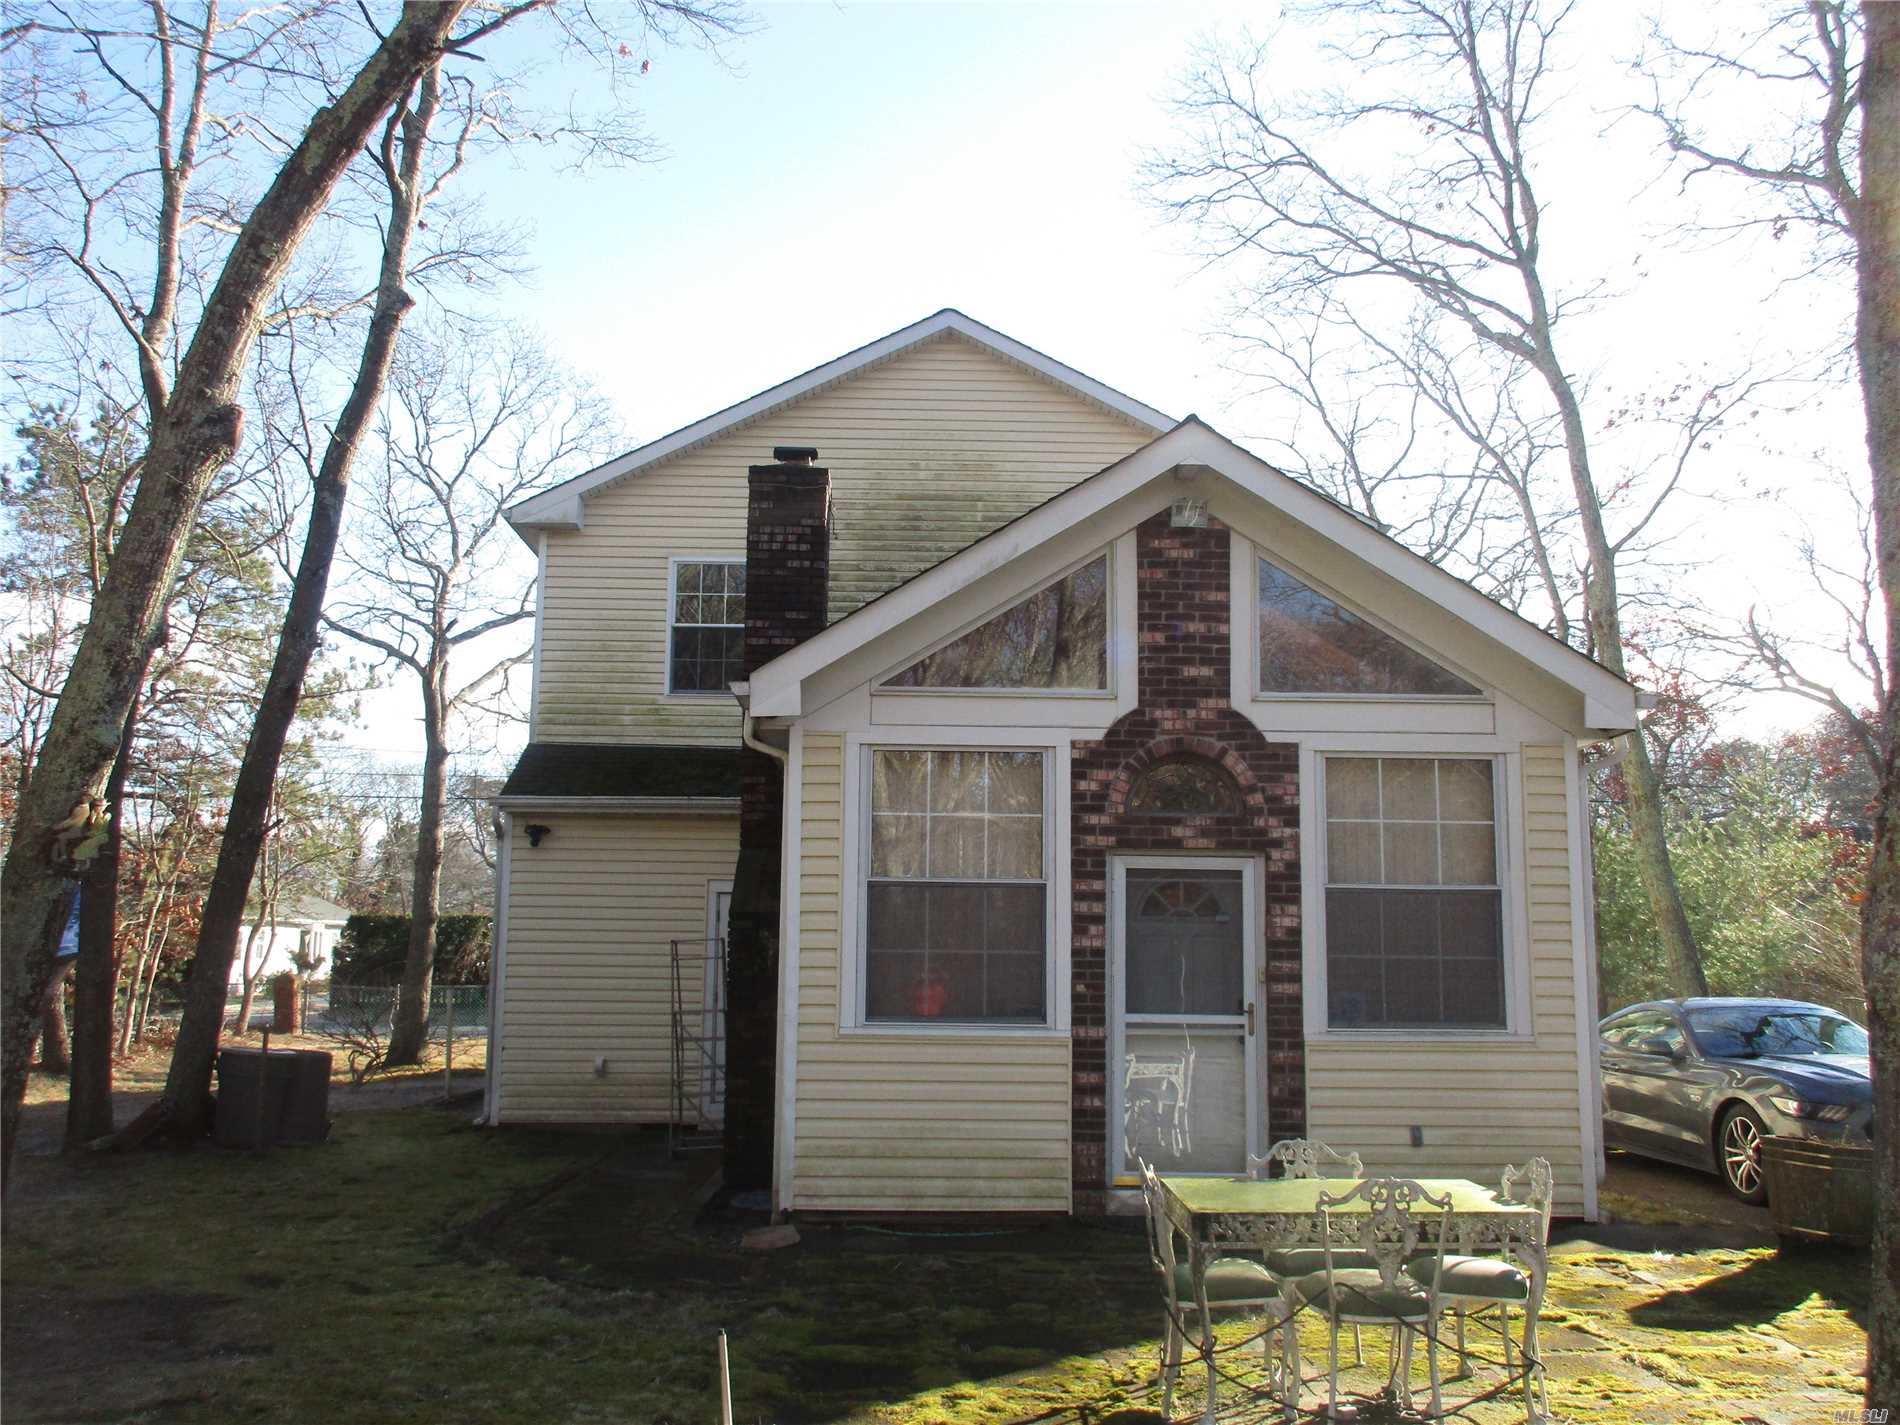 Located On A Quiet Street, This Large 4 Br , 2 Bath, Has A Newly Renovated 2nd Floor With 2 Huge Brs, And 1 Bath. Lower Level Features 2Brs, Living Room, Kitchen, Bathroom, And Great Room With Wood Burning Stove. Large Back Yard With Room For A Pool. Moments From Bay Access.